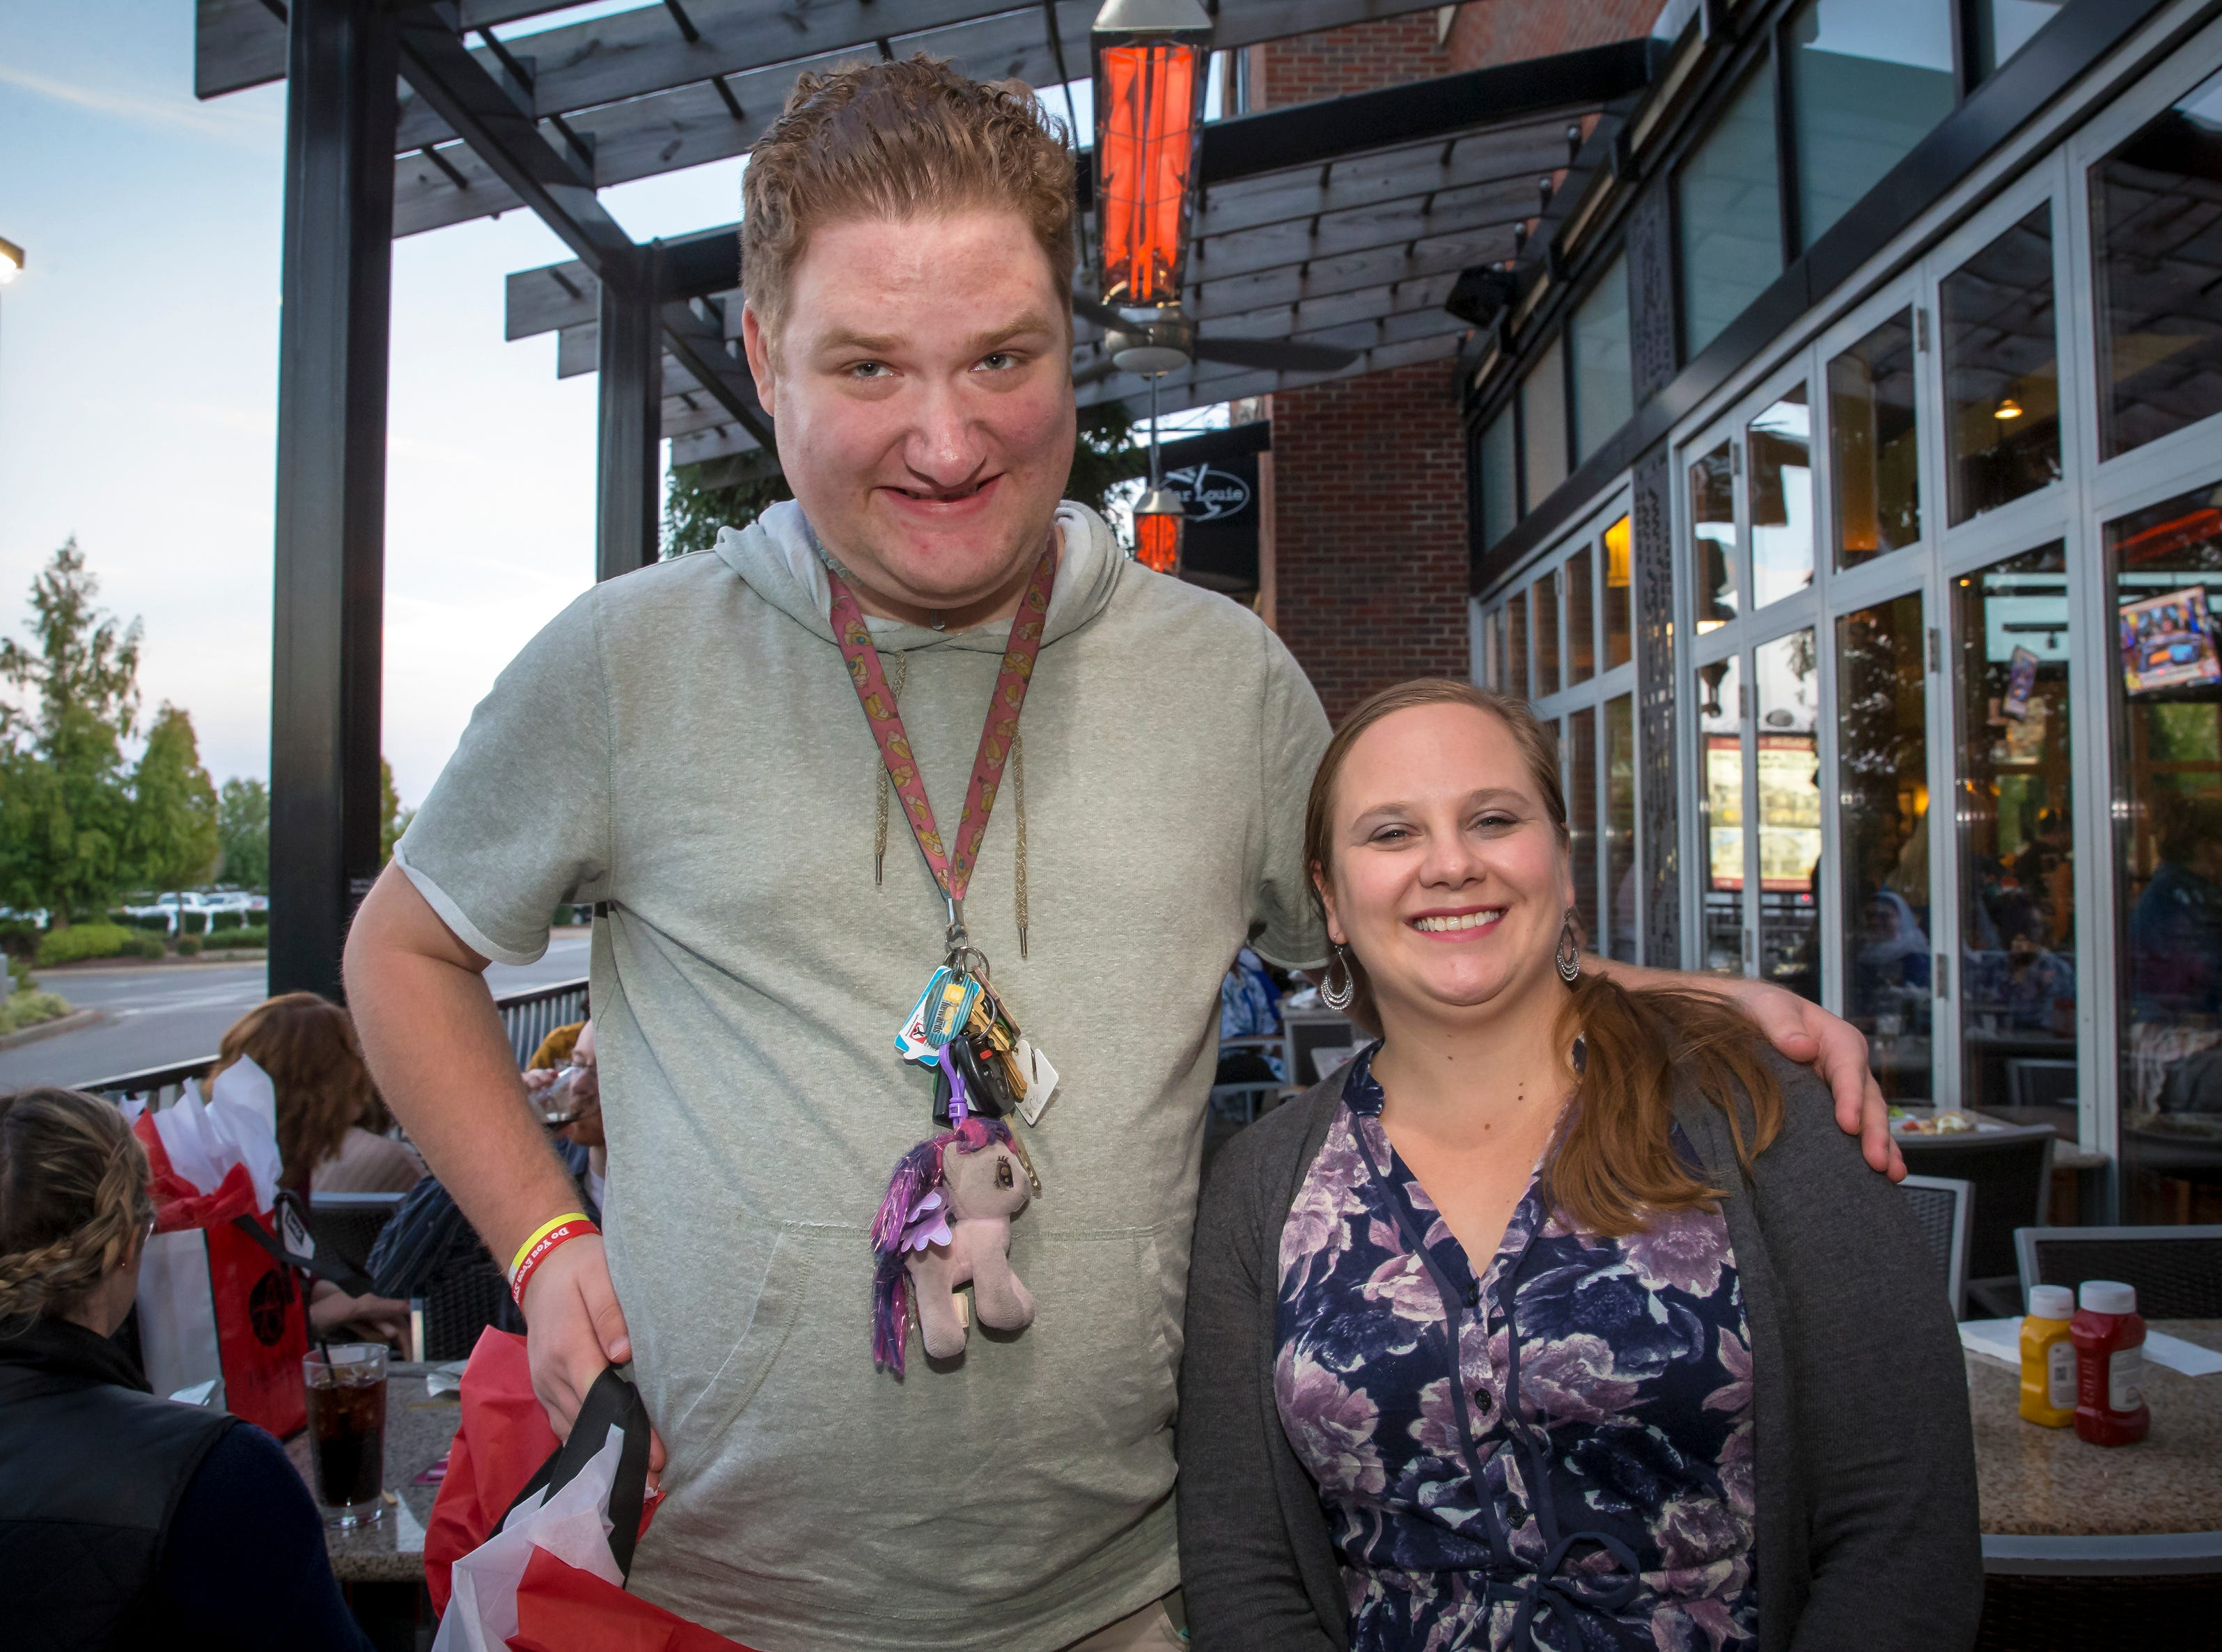 Zach Sutton and Sarah Clark at the Murfreesboro Magazine Most Beautiful People event held at Bar Louie.